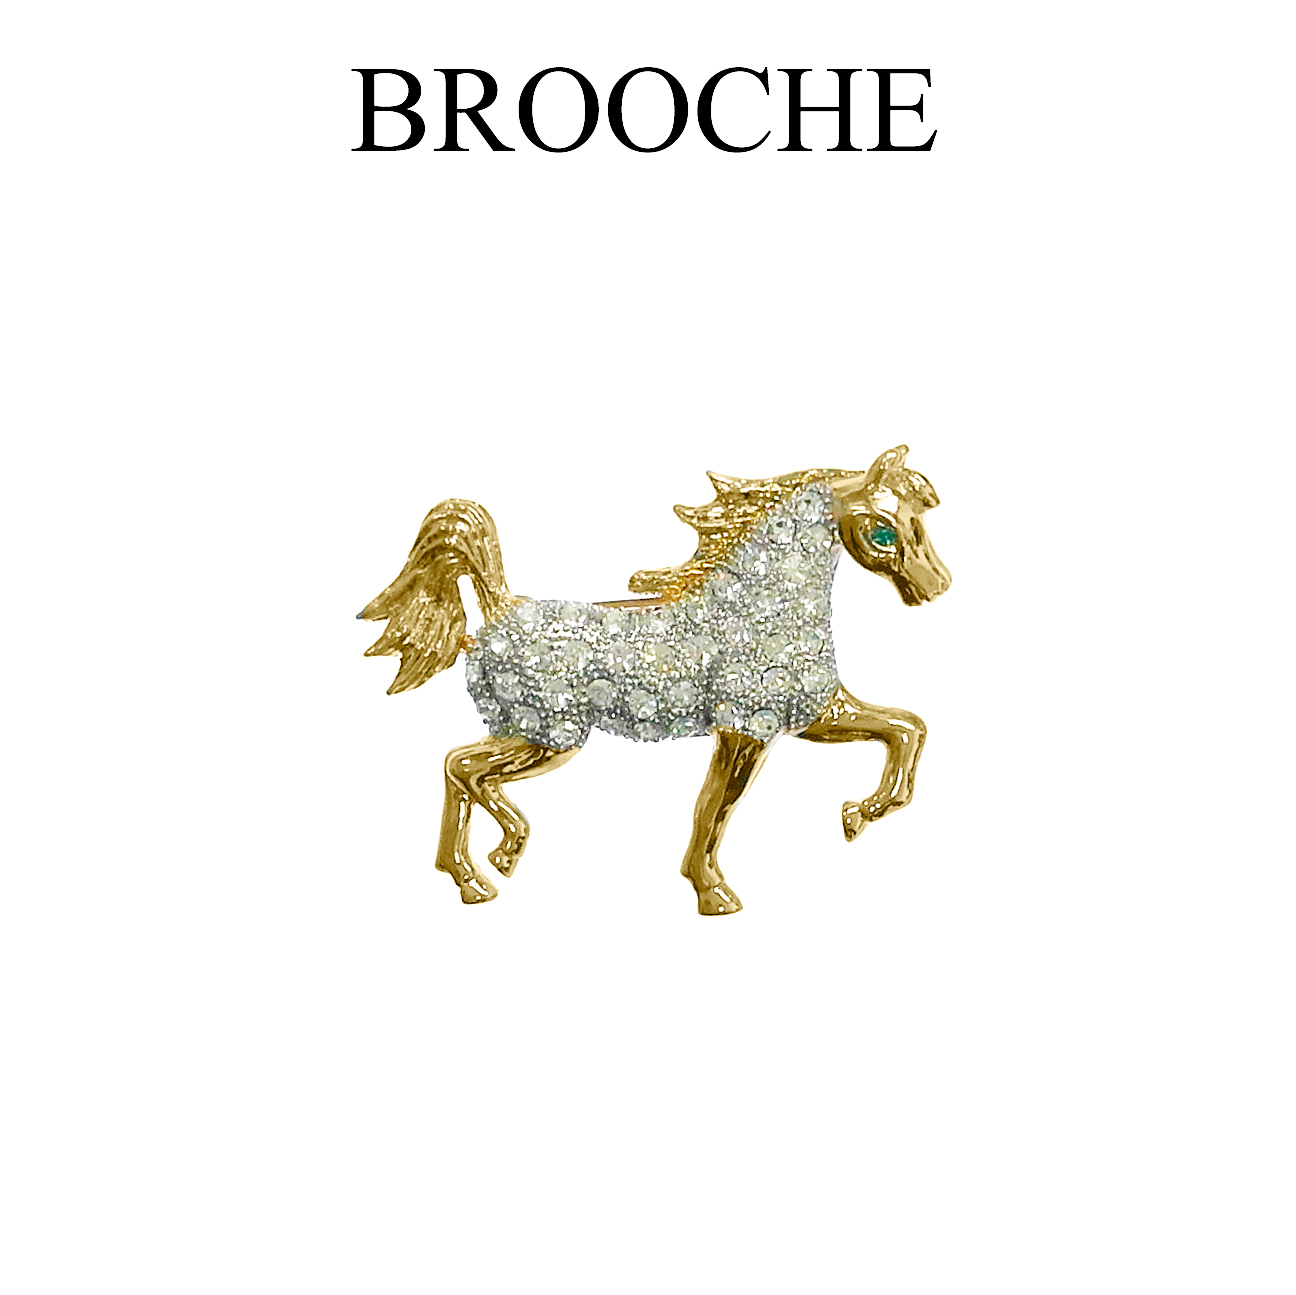 Accessories < Brooches < Brooches < Wholesale Brooches